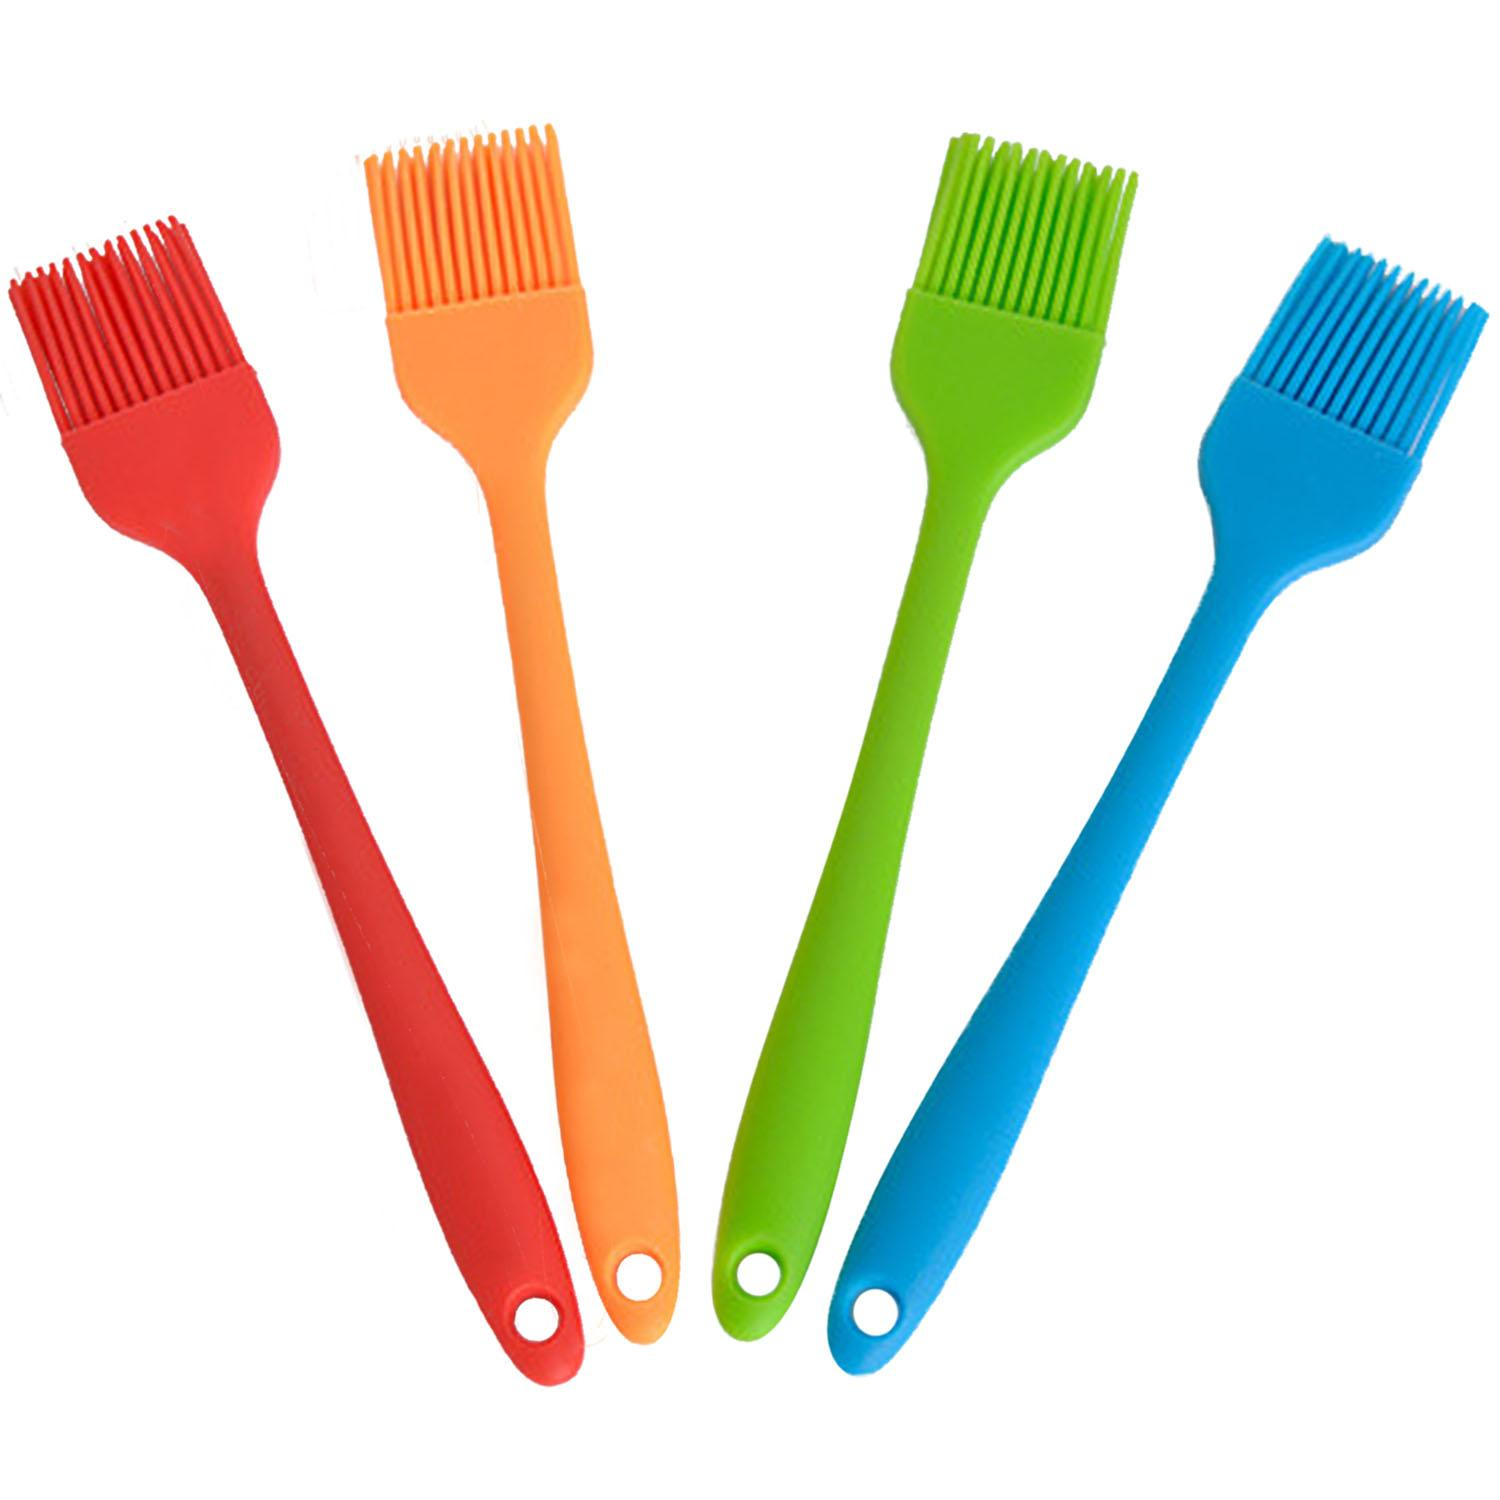 4Pcs Silicone Baking Cake Pastry Bread Bakeware Oil Roast Cream BBQ Brush Basting Tools Kitchen Accessories Gadgets - intl